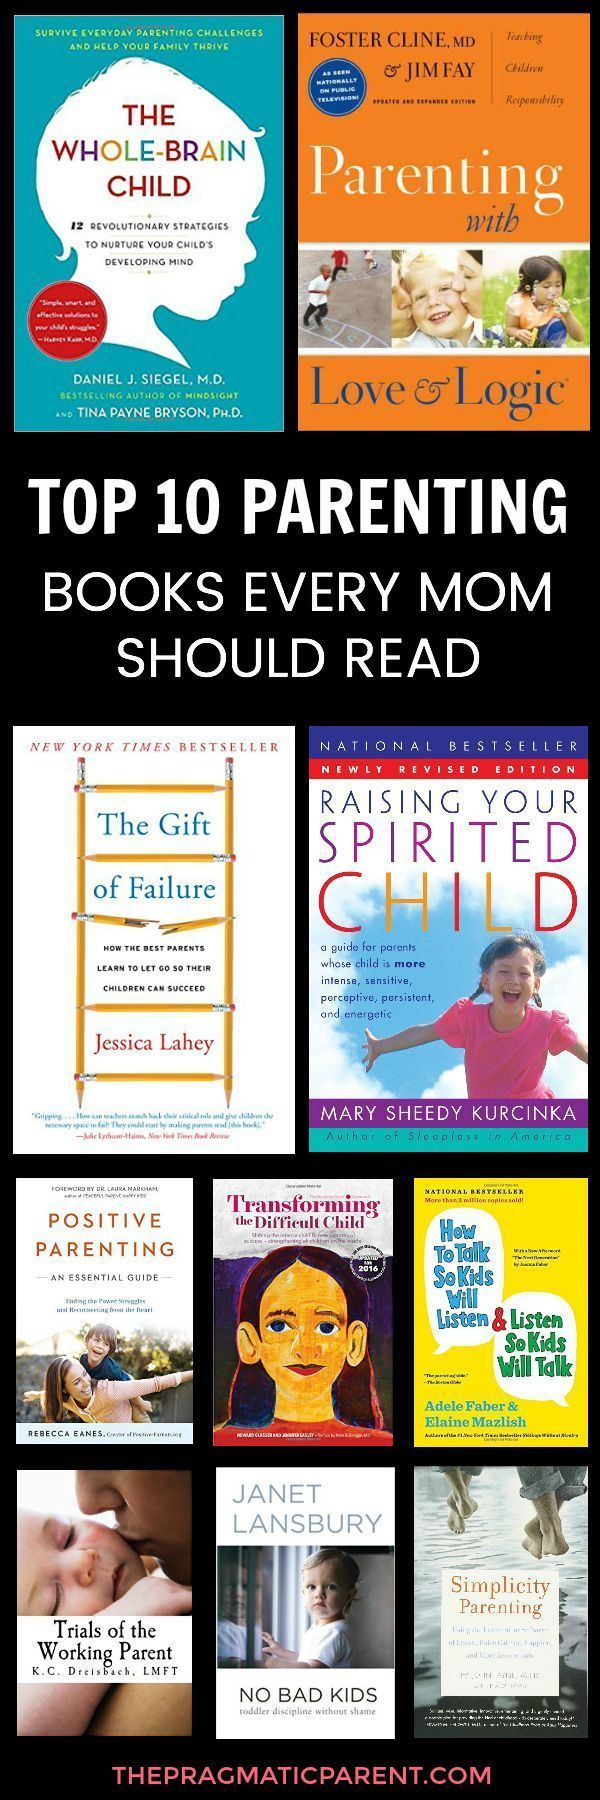 The 10 best parenting books every Mom needs to read. Helpful parenting advice for parents with a positive parenting approach and heart-centered focus on motherhood, parenting and positive discipline. These are the top 10 parenting books for parents. #bestparentingbooks #positiveparenting #positiveparentingtips #raisinghappykids